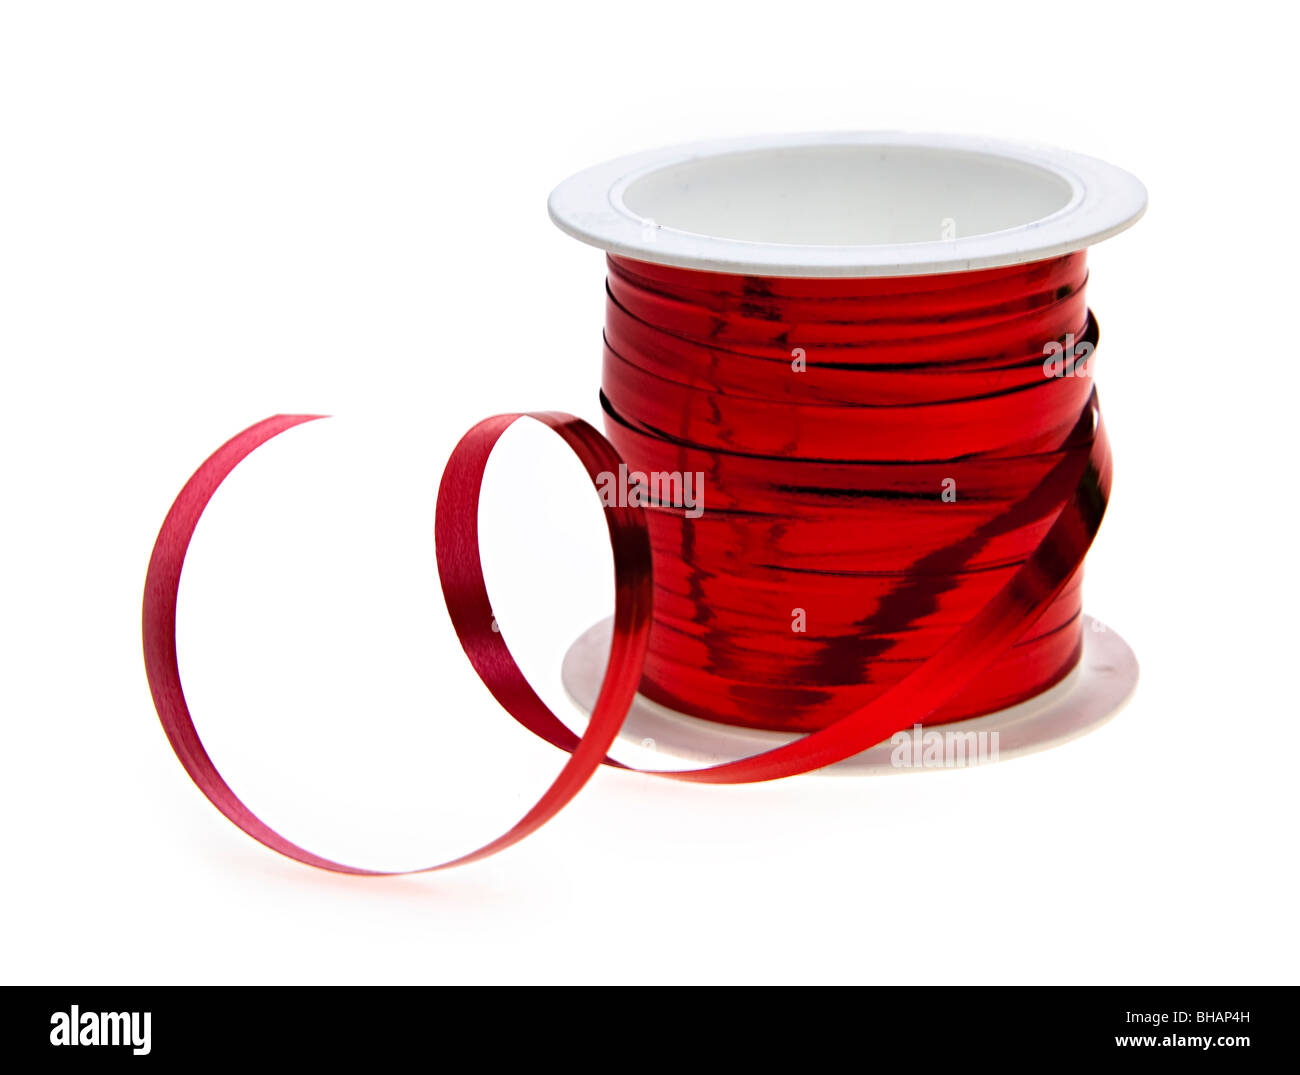 Red ribbon on spool - Stock Image